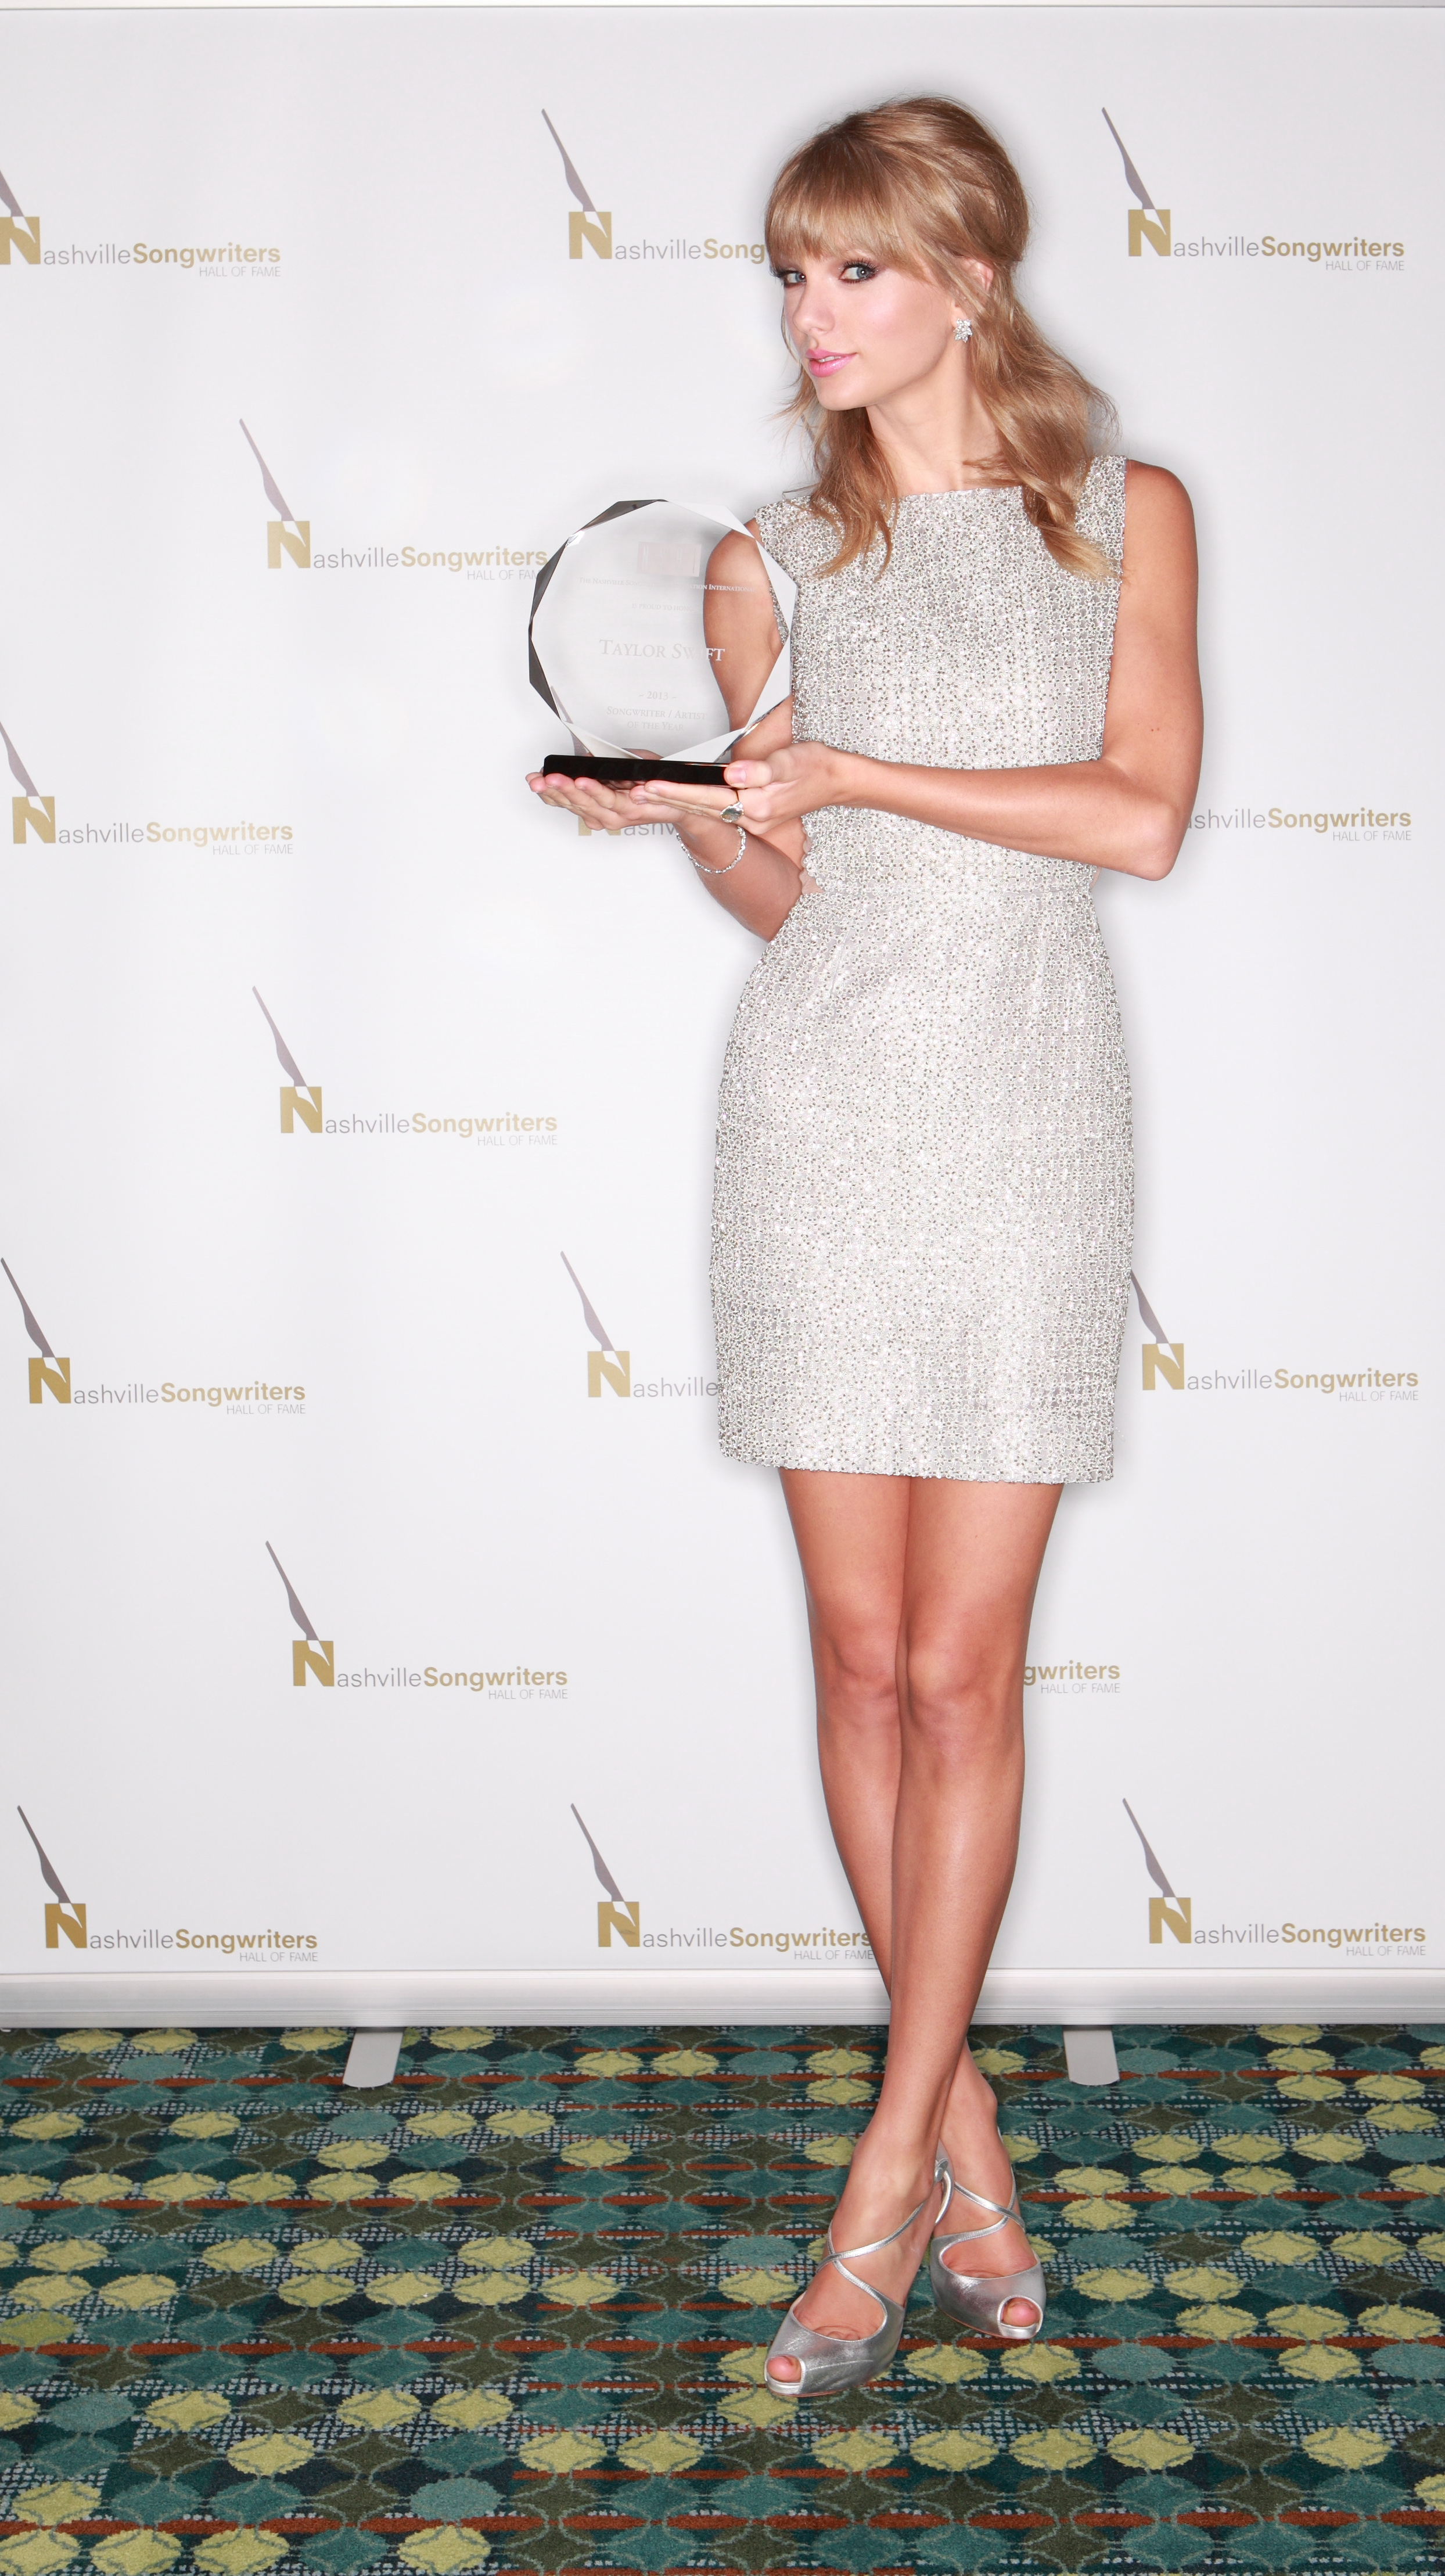 http://www.taylorpictures.net/albums/app/2013/nashvillesongwritershalloffameinductionceremony/001.jpg